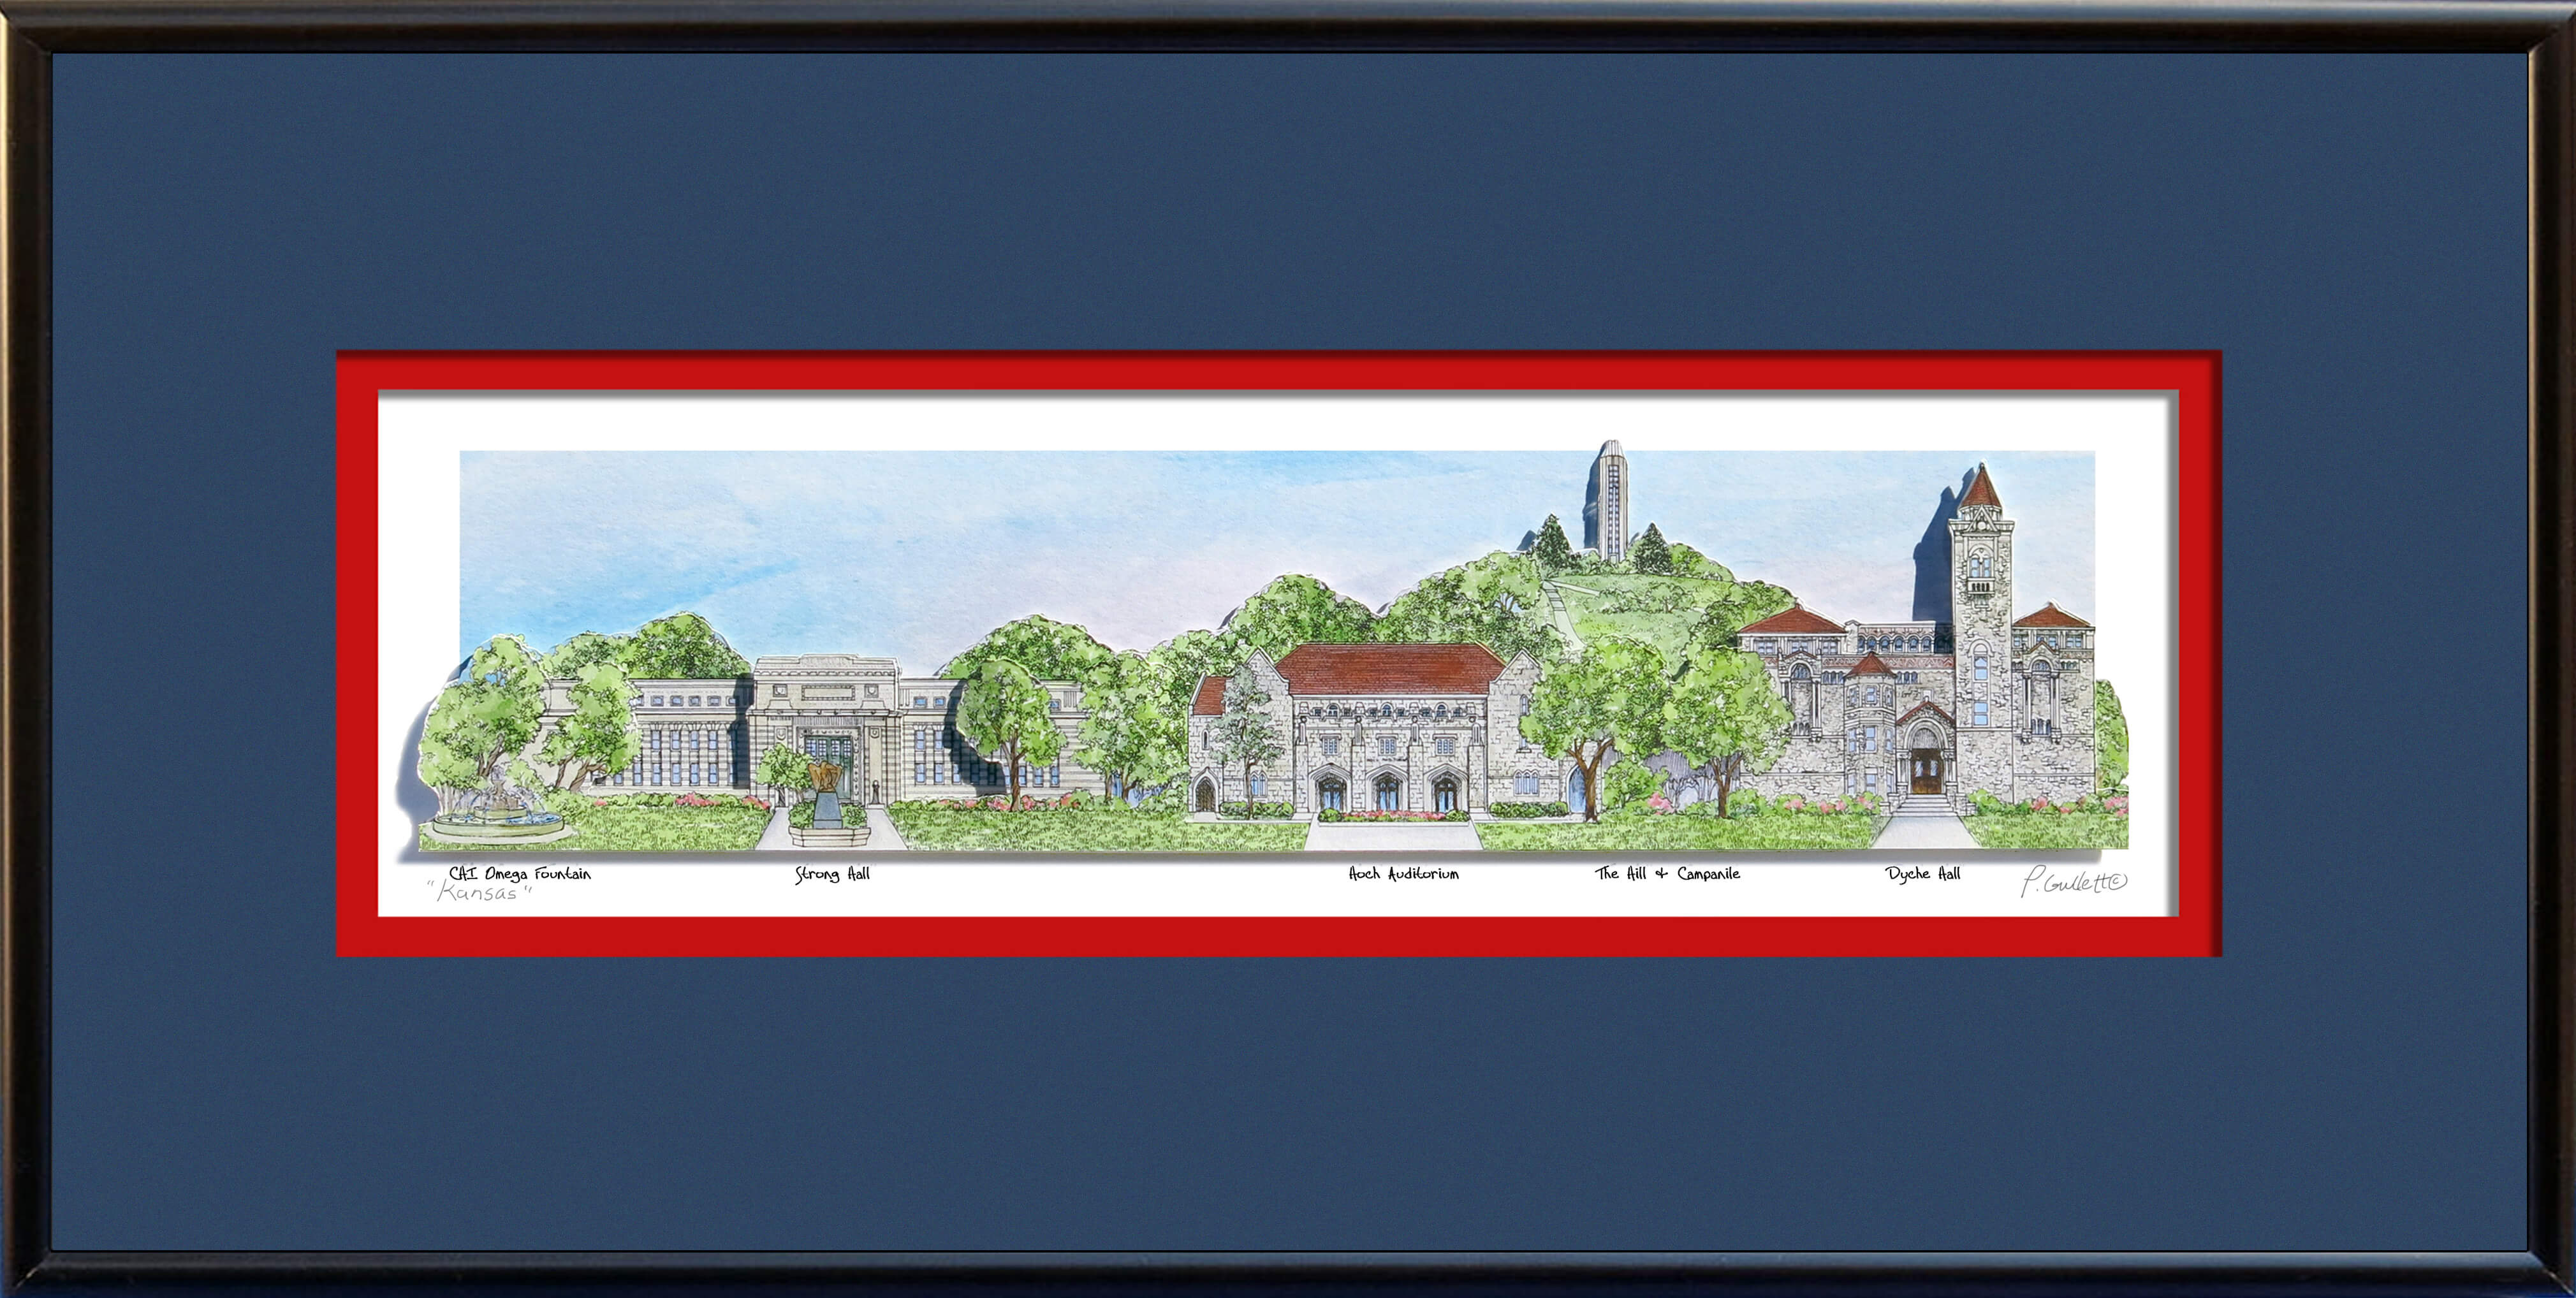 U of KS FRAME